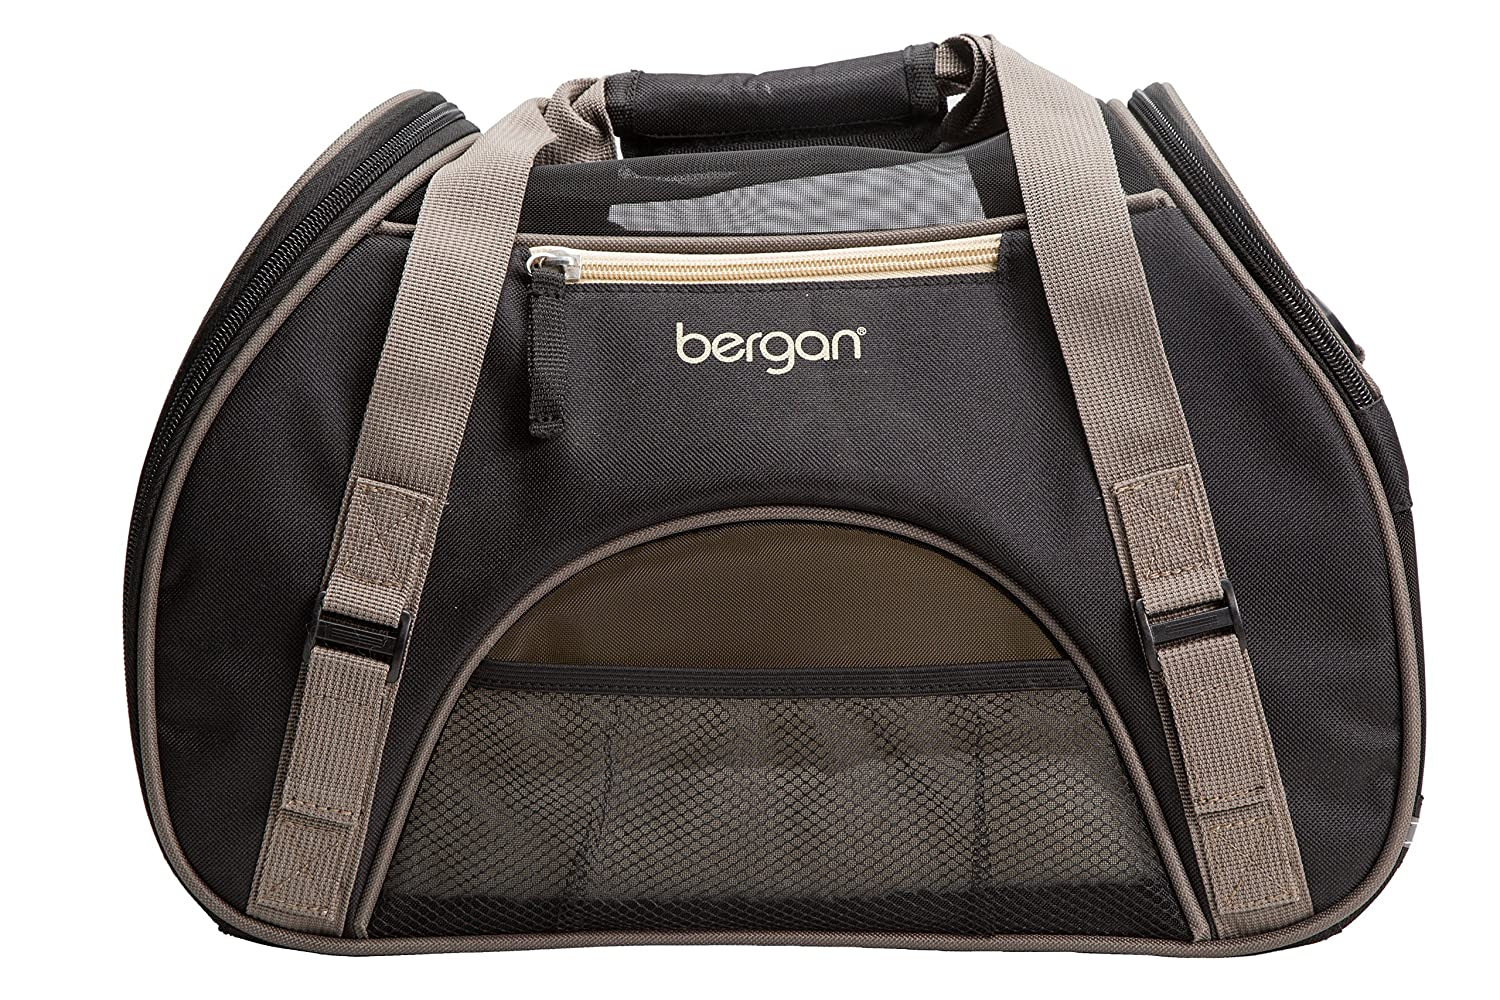 Bergan Comfort Carrier, Small Black 88900